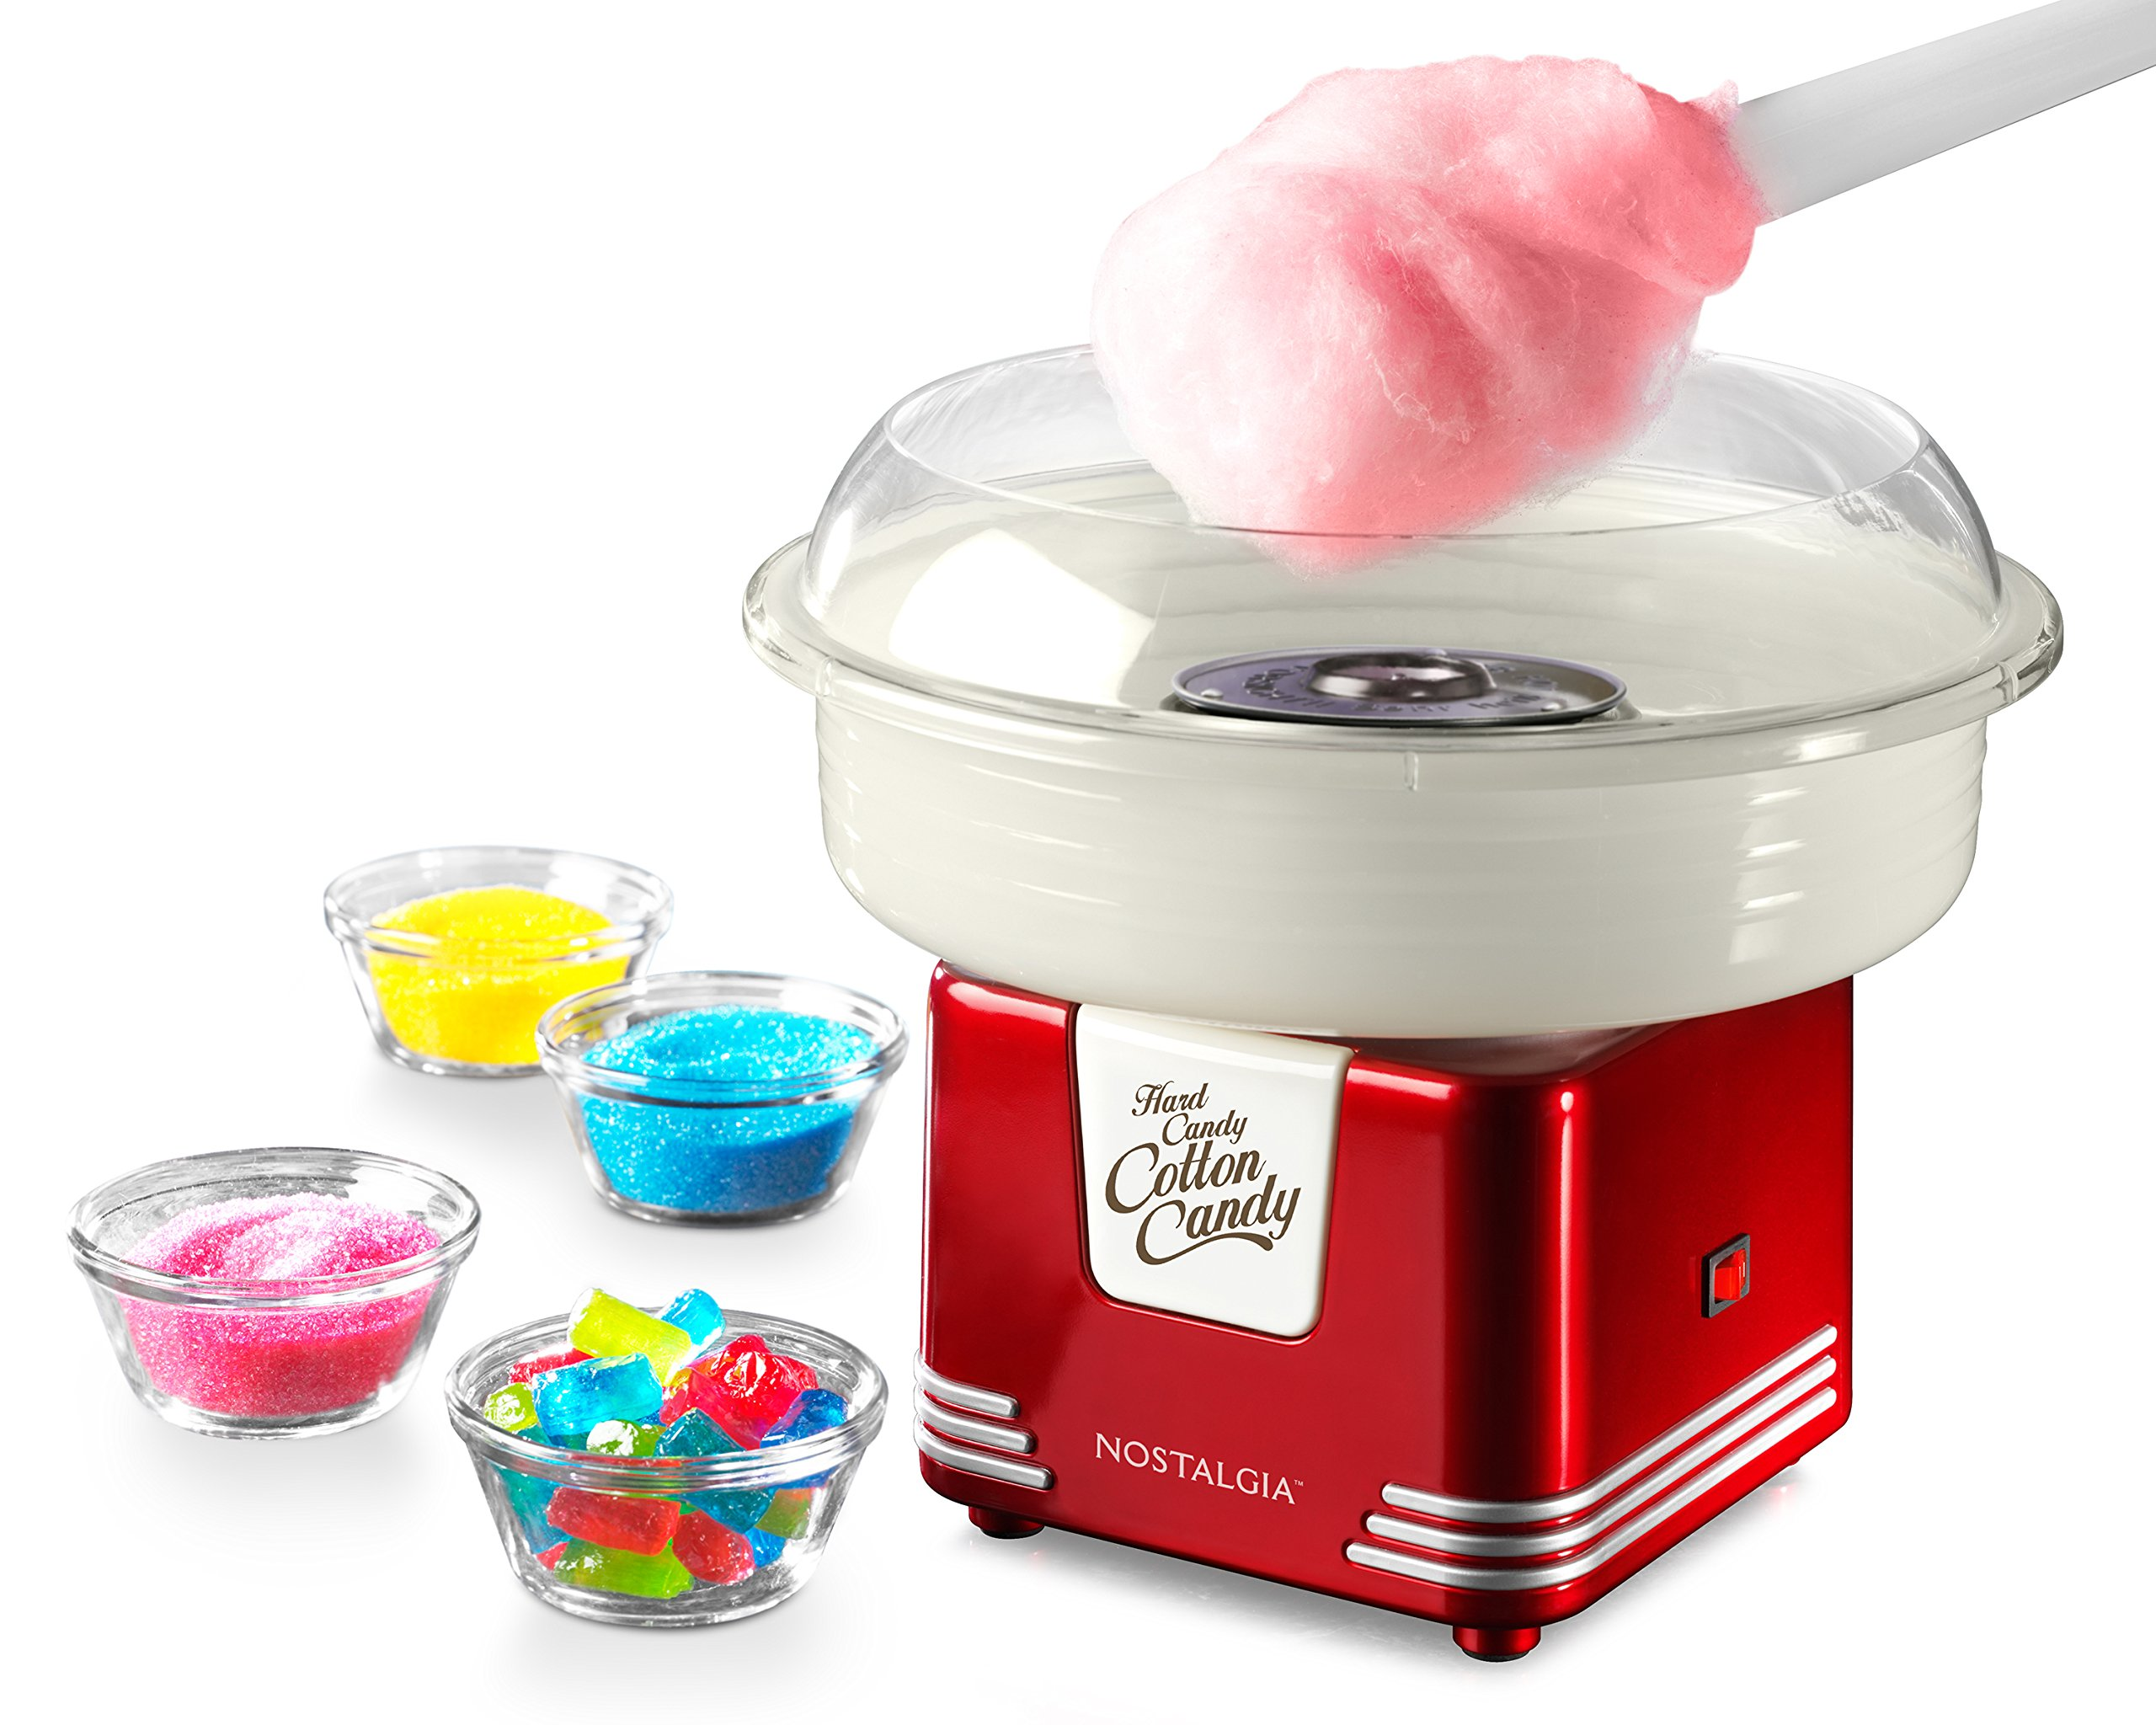 Nostalgia Retro Series Hard & Sugar-Free Candy Cotton Candy Maker by Nostalgia Electrics (Image #1)